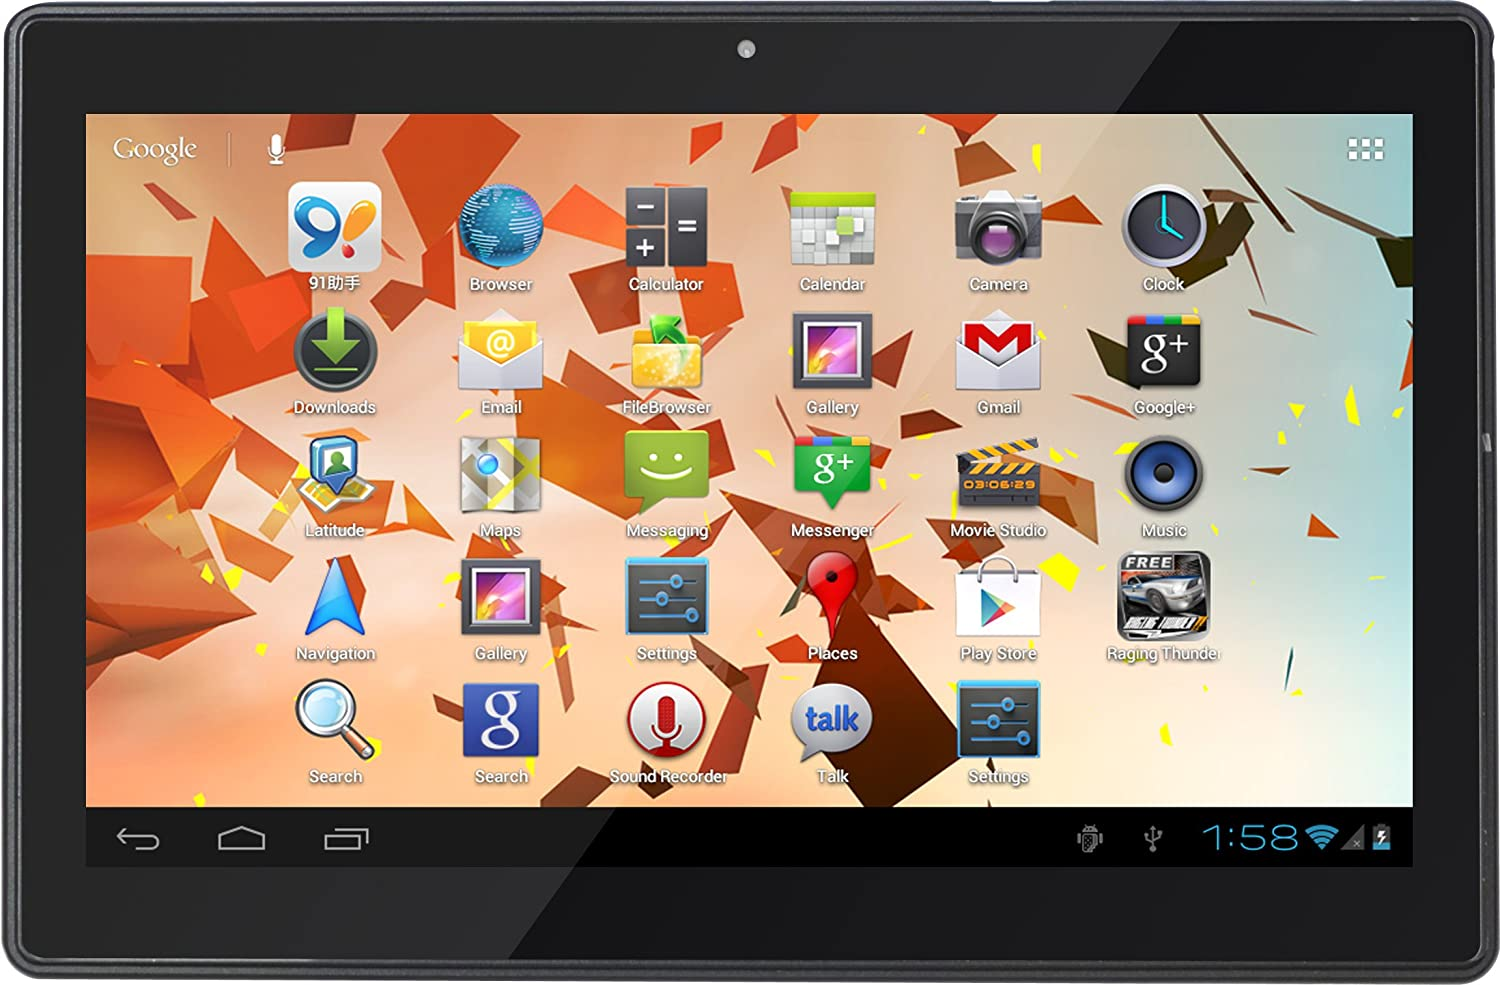 Zenithink C94 - Touchscreen Tablet - 10 Inch HD (1024 x 600